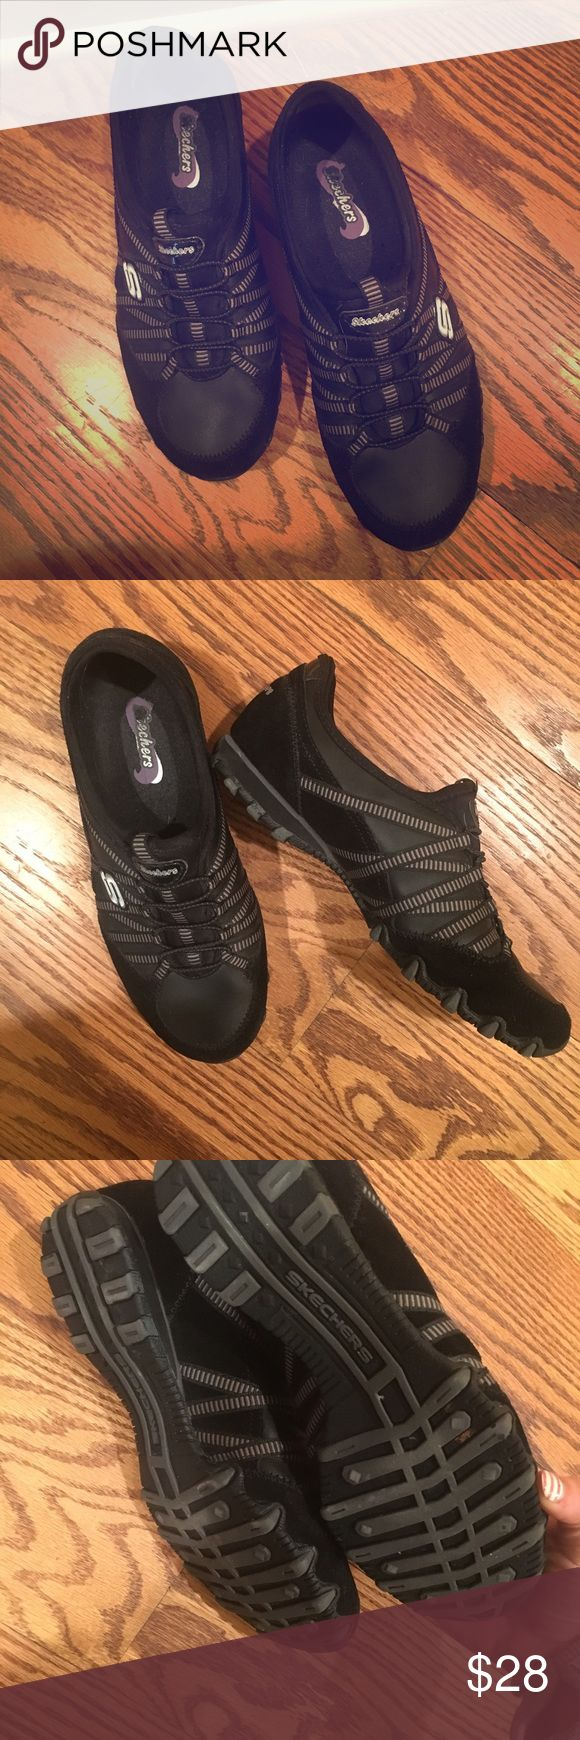 Sketchers Sneakers ❤️ New and never worn before but no tags. The sketcher sneakers are so cute and perfect just to slip on and go anywhere they are black which allows them to go with any outfit. They are a size 7 in women's. Skechers Shoes Sneakers